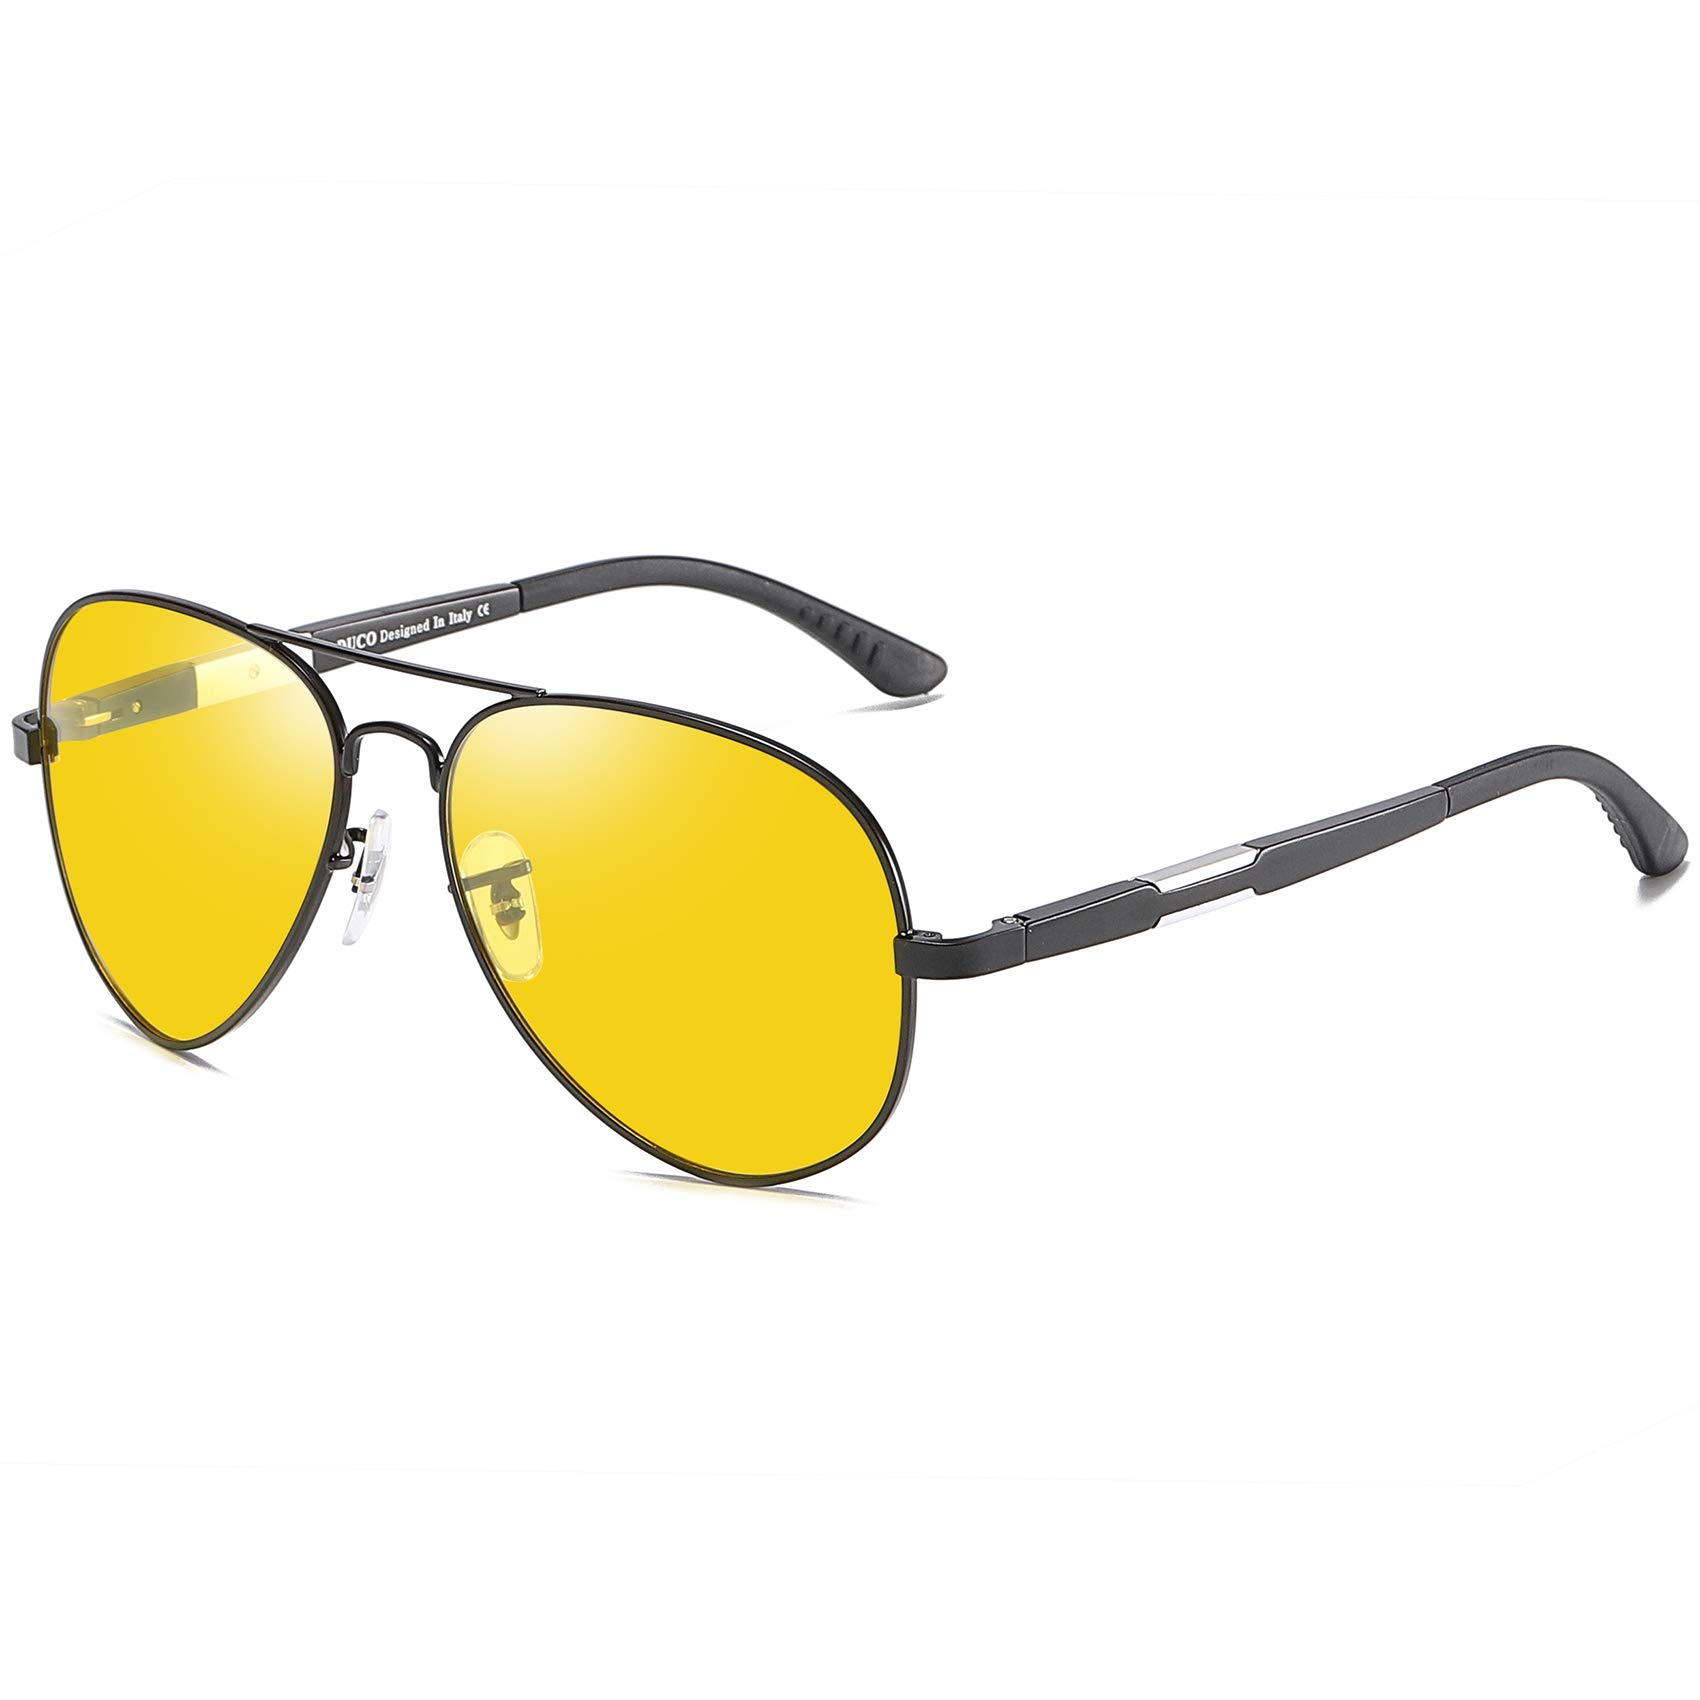 Duco Pilot Style Night Vision Polarized Anti-Glare Glasses For Mens Womens Sports 3026 (Black) by DUCO